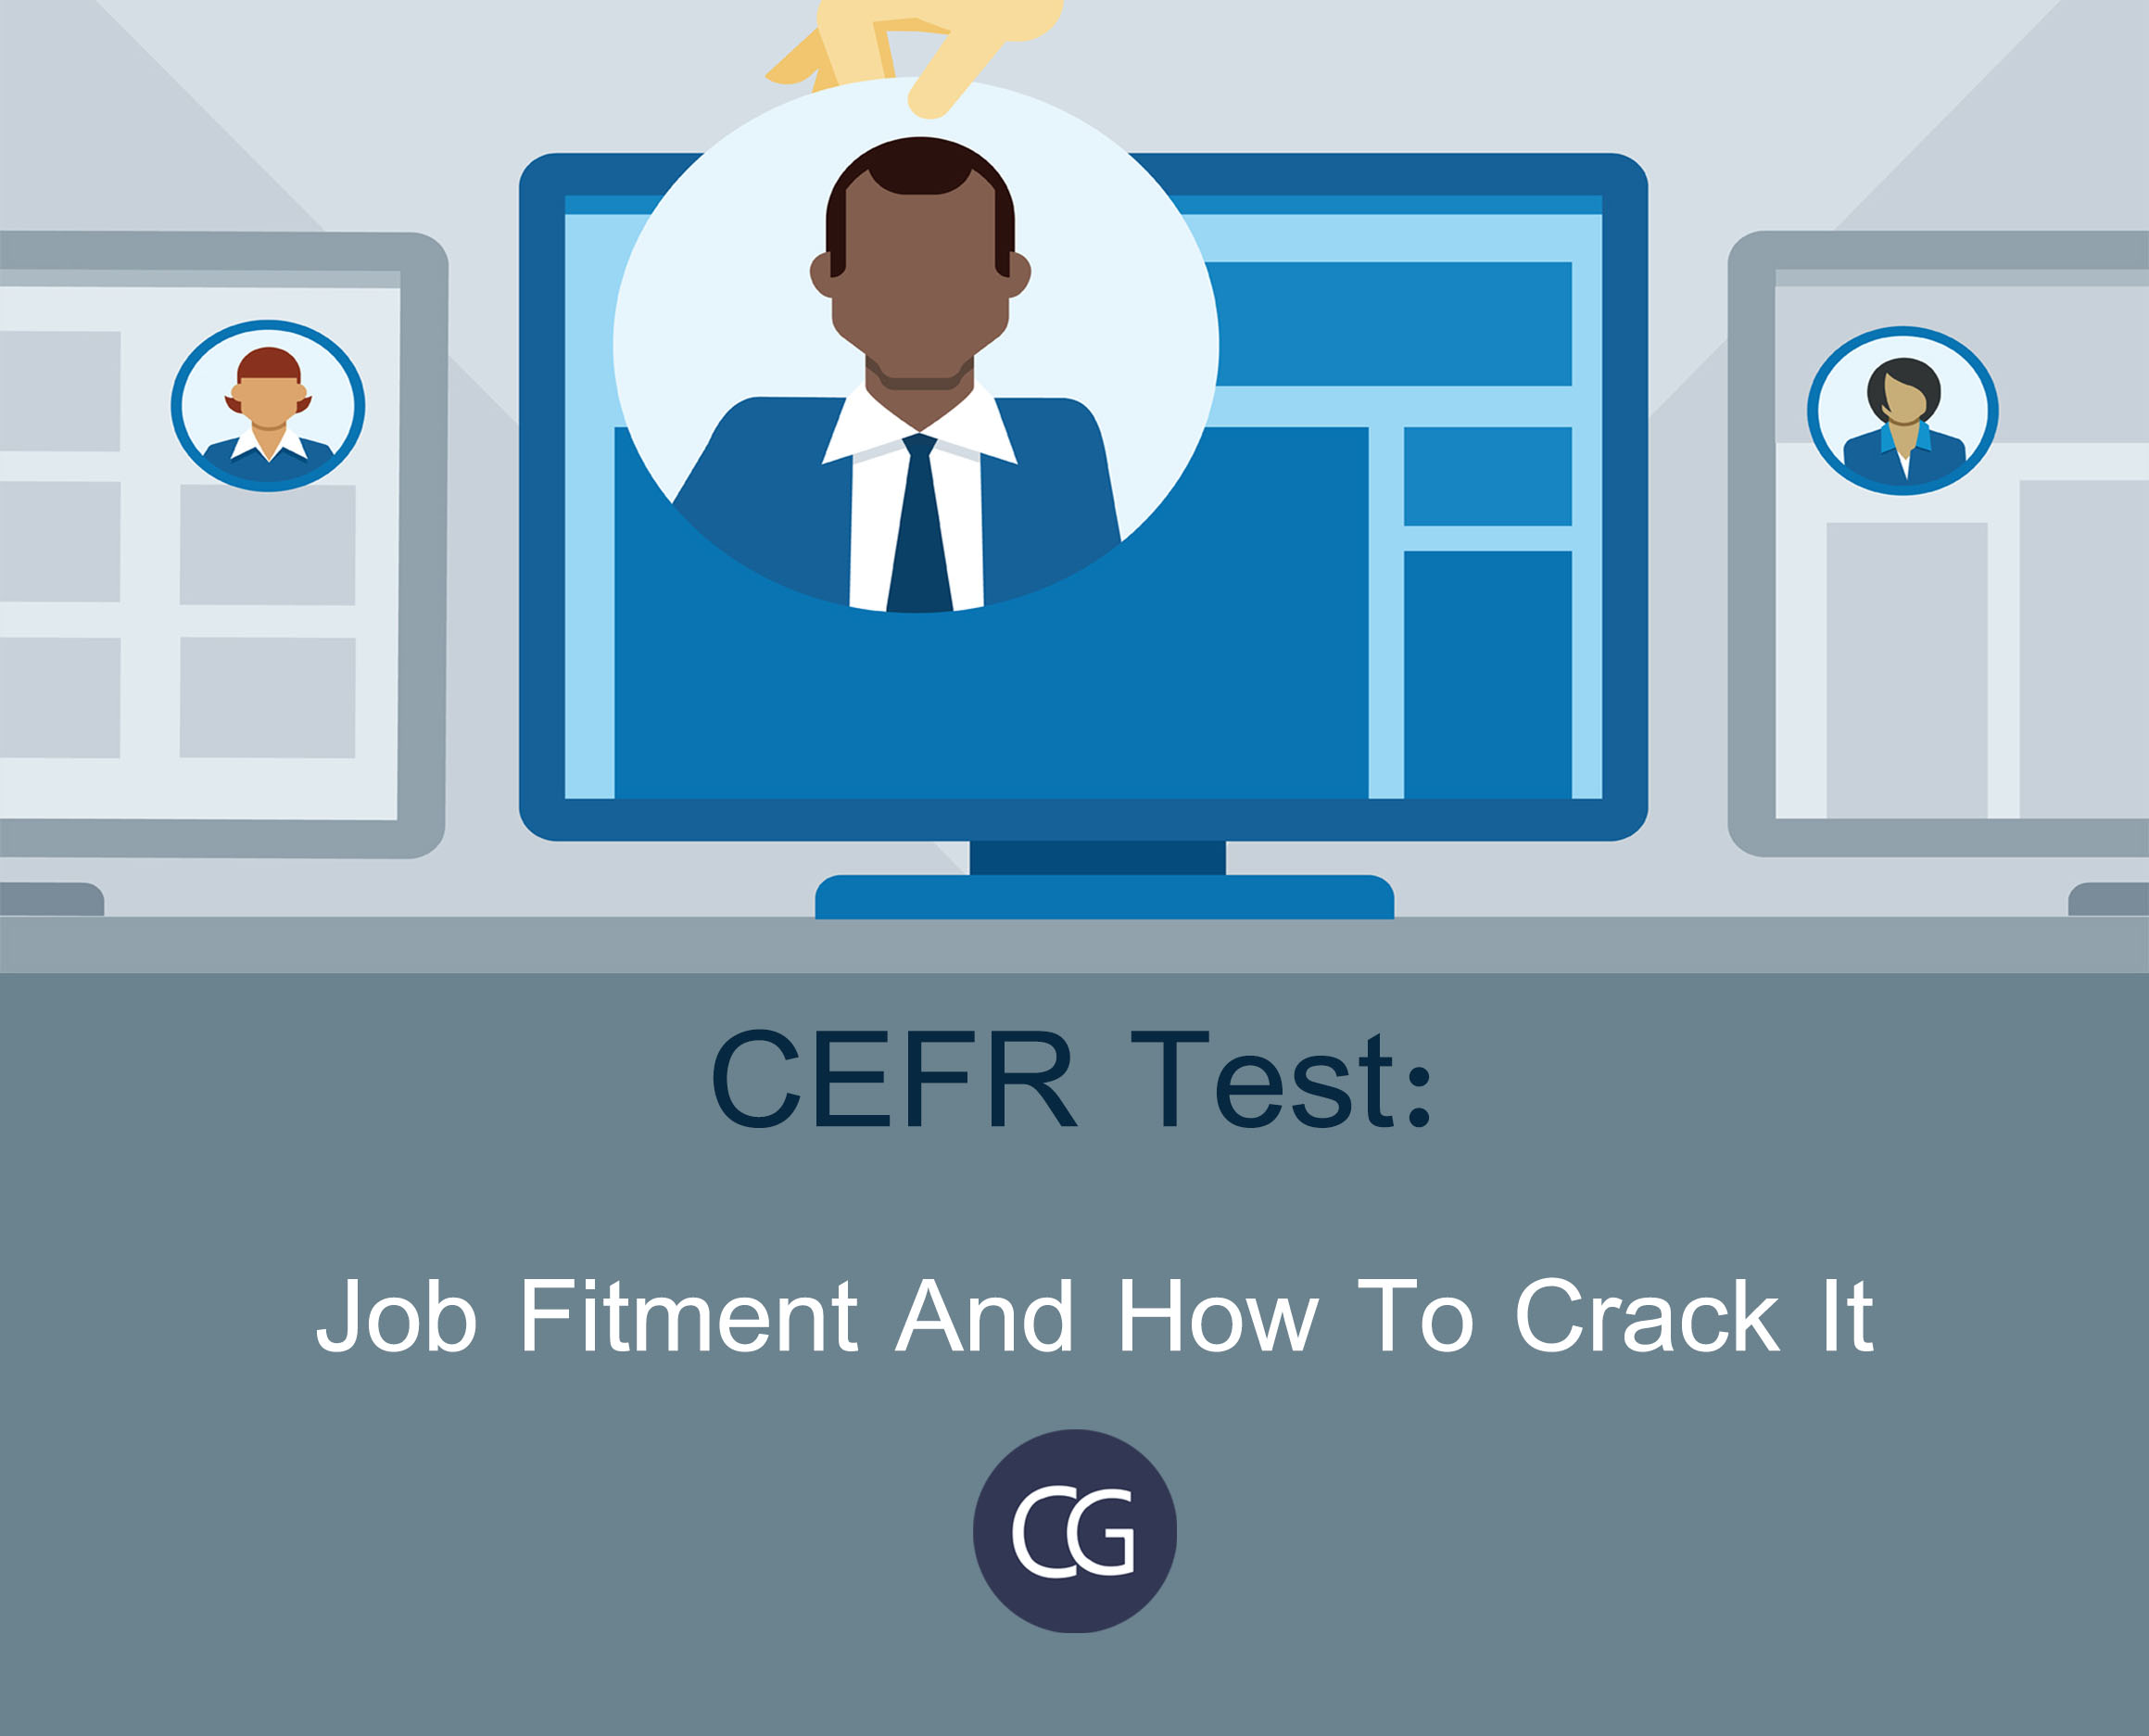 cefr-test-job-fitment-how-to-crack-it